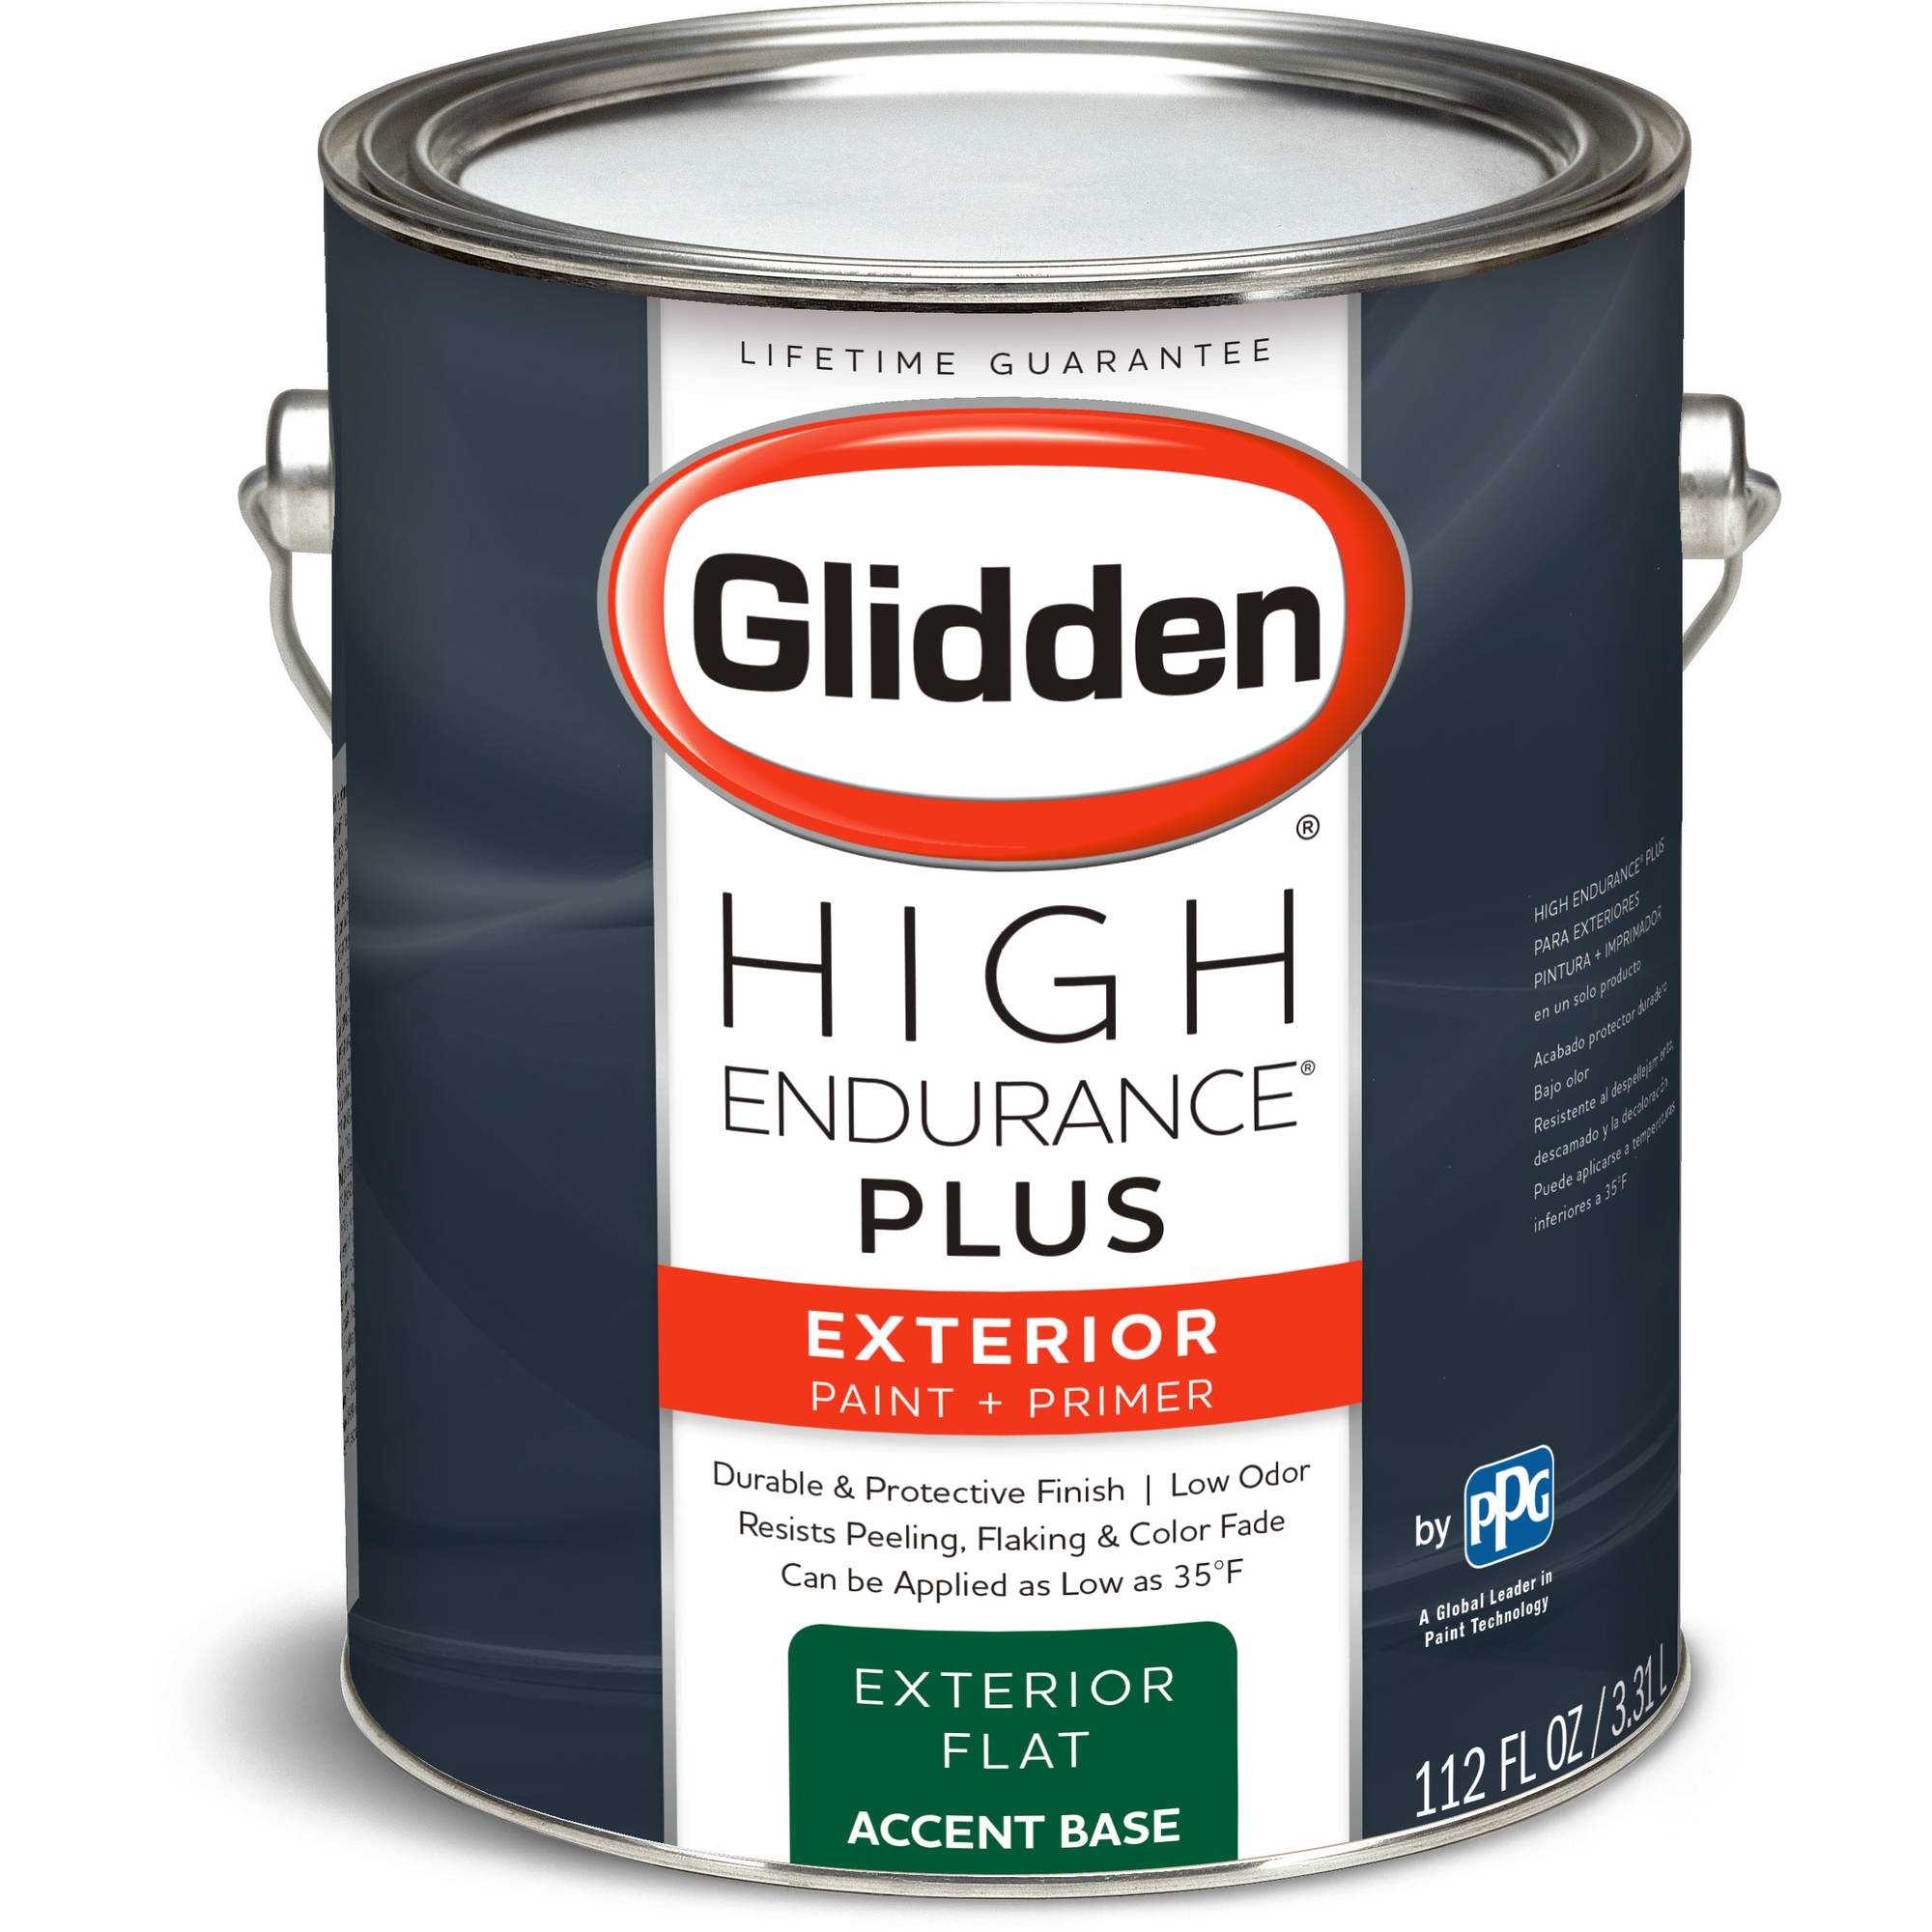 Glidden High Endurance Plus, Exterior Paint and Primer, Flat Finish, Accent Base, 1 Gallon